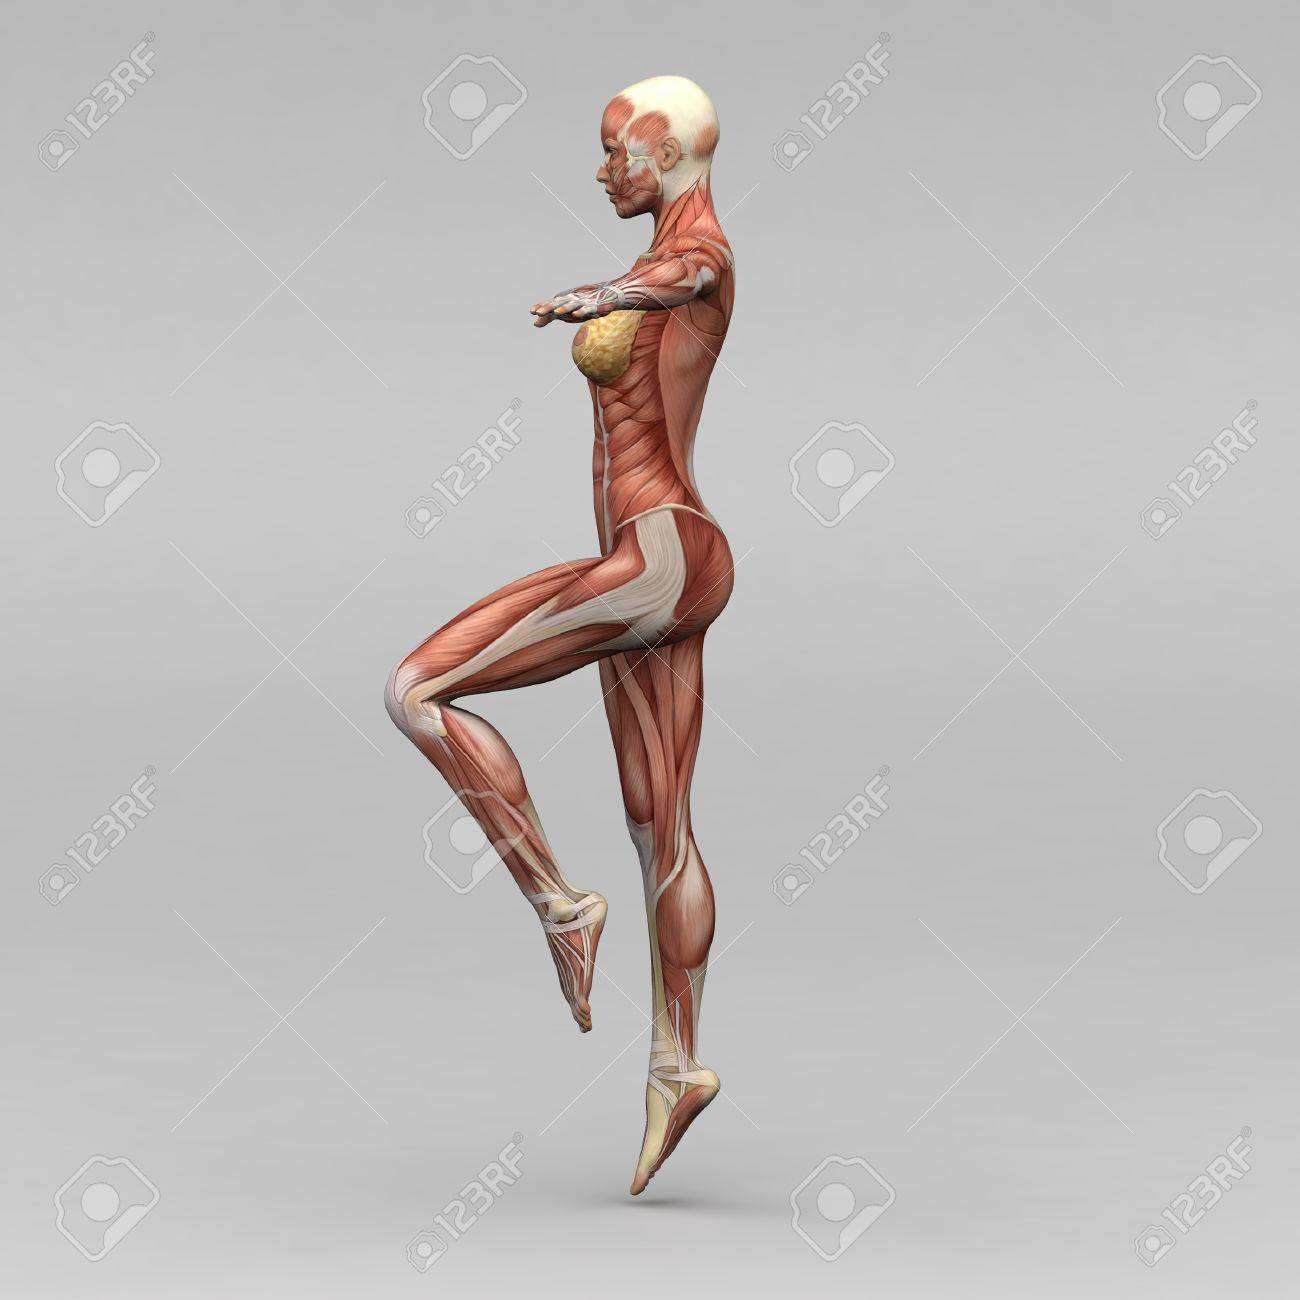 Female Human Anatomy And Muscles Stock Photo, Picture And Royalty ...